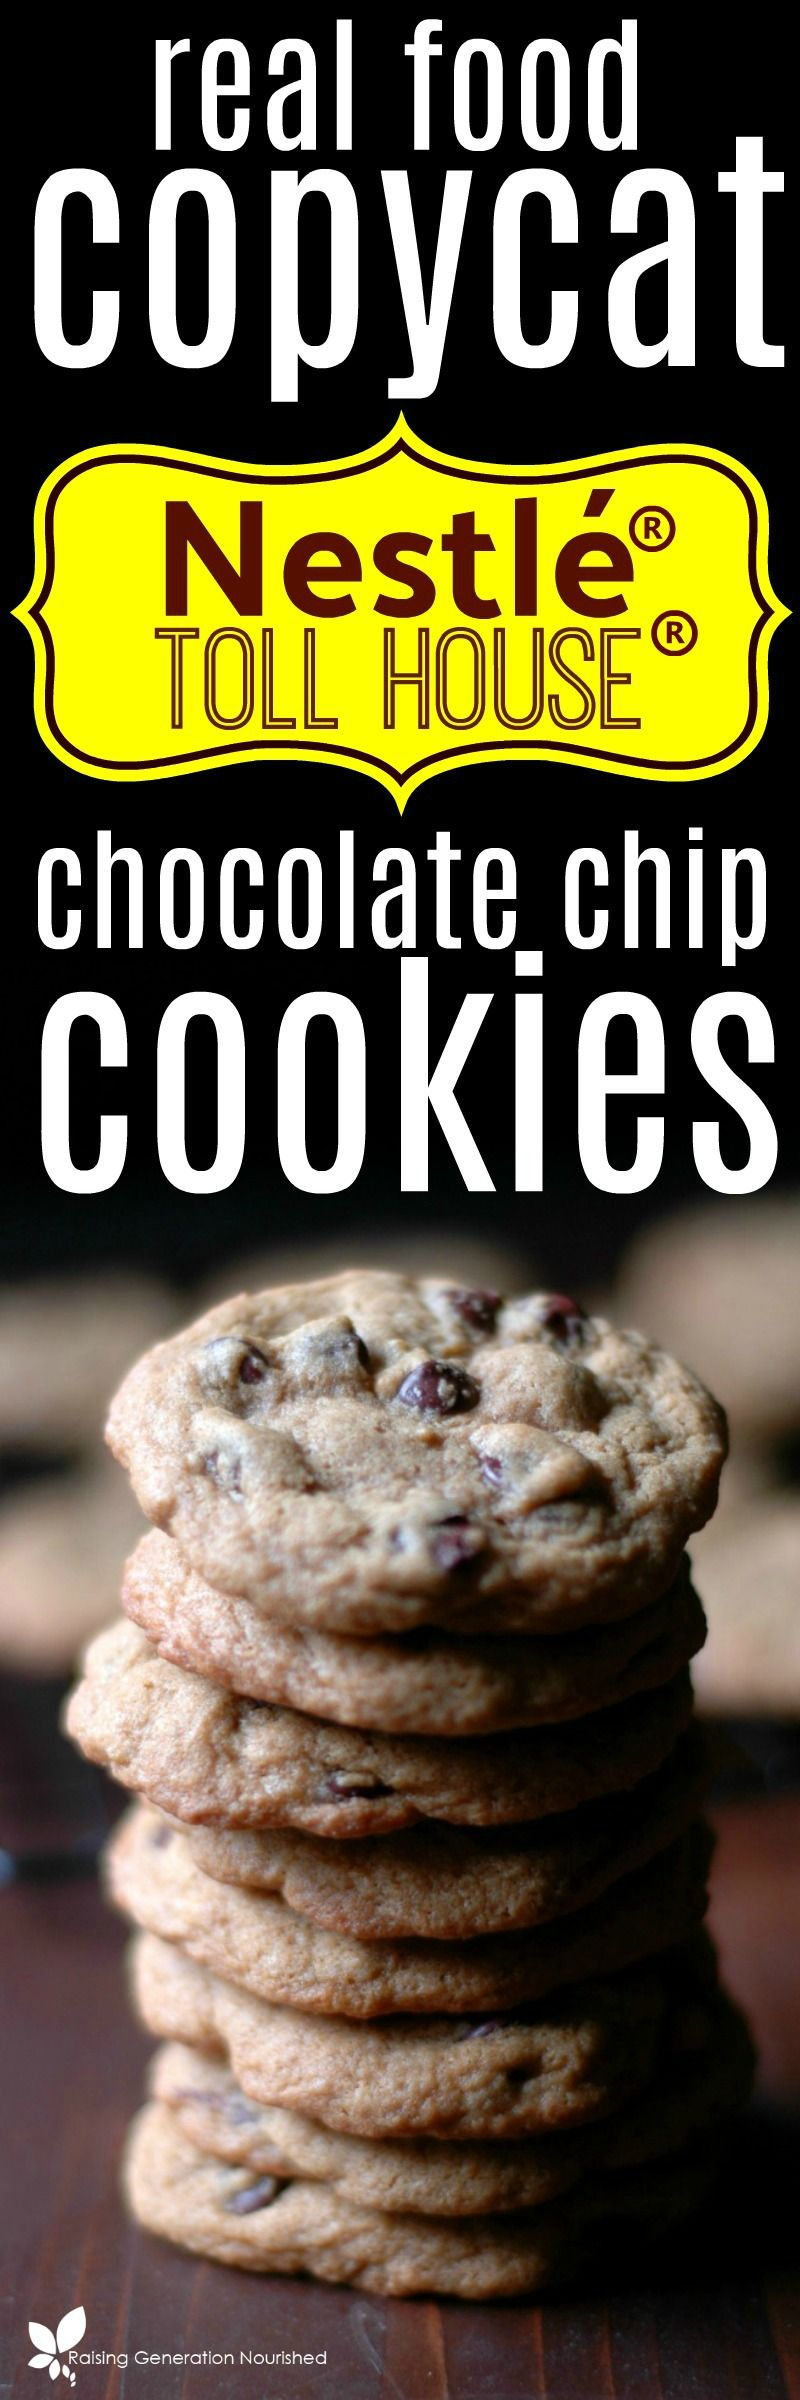 Real Food Copycat Nestle® Toll House® Cookies :: Gluten and Dairy Free Too!